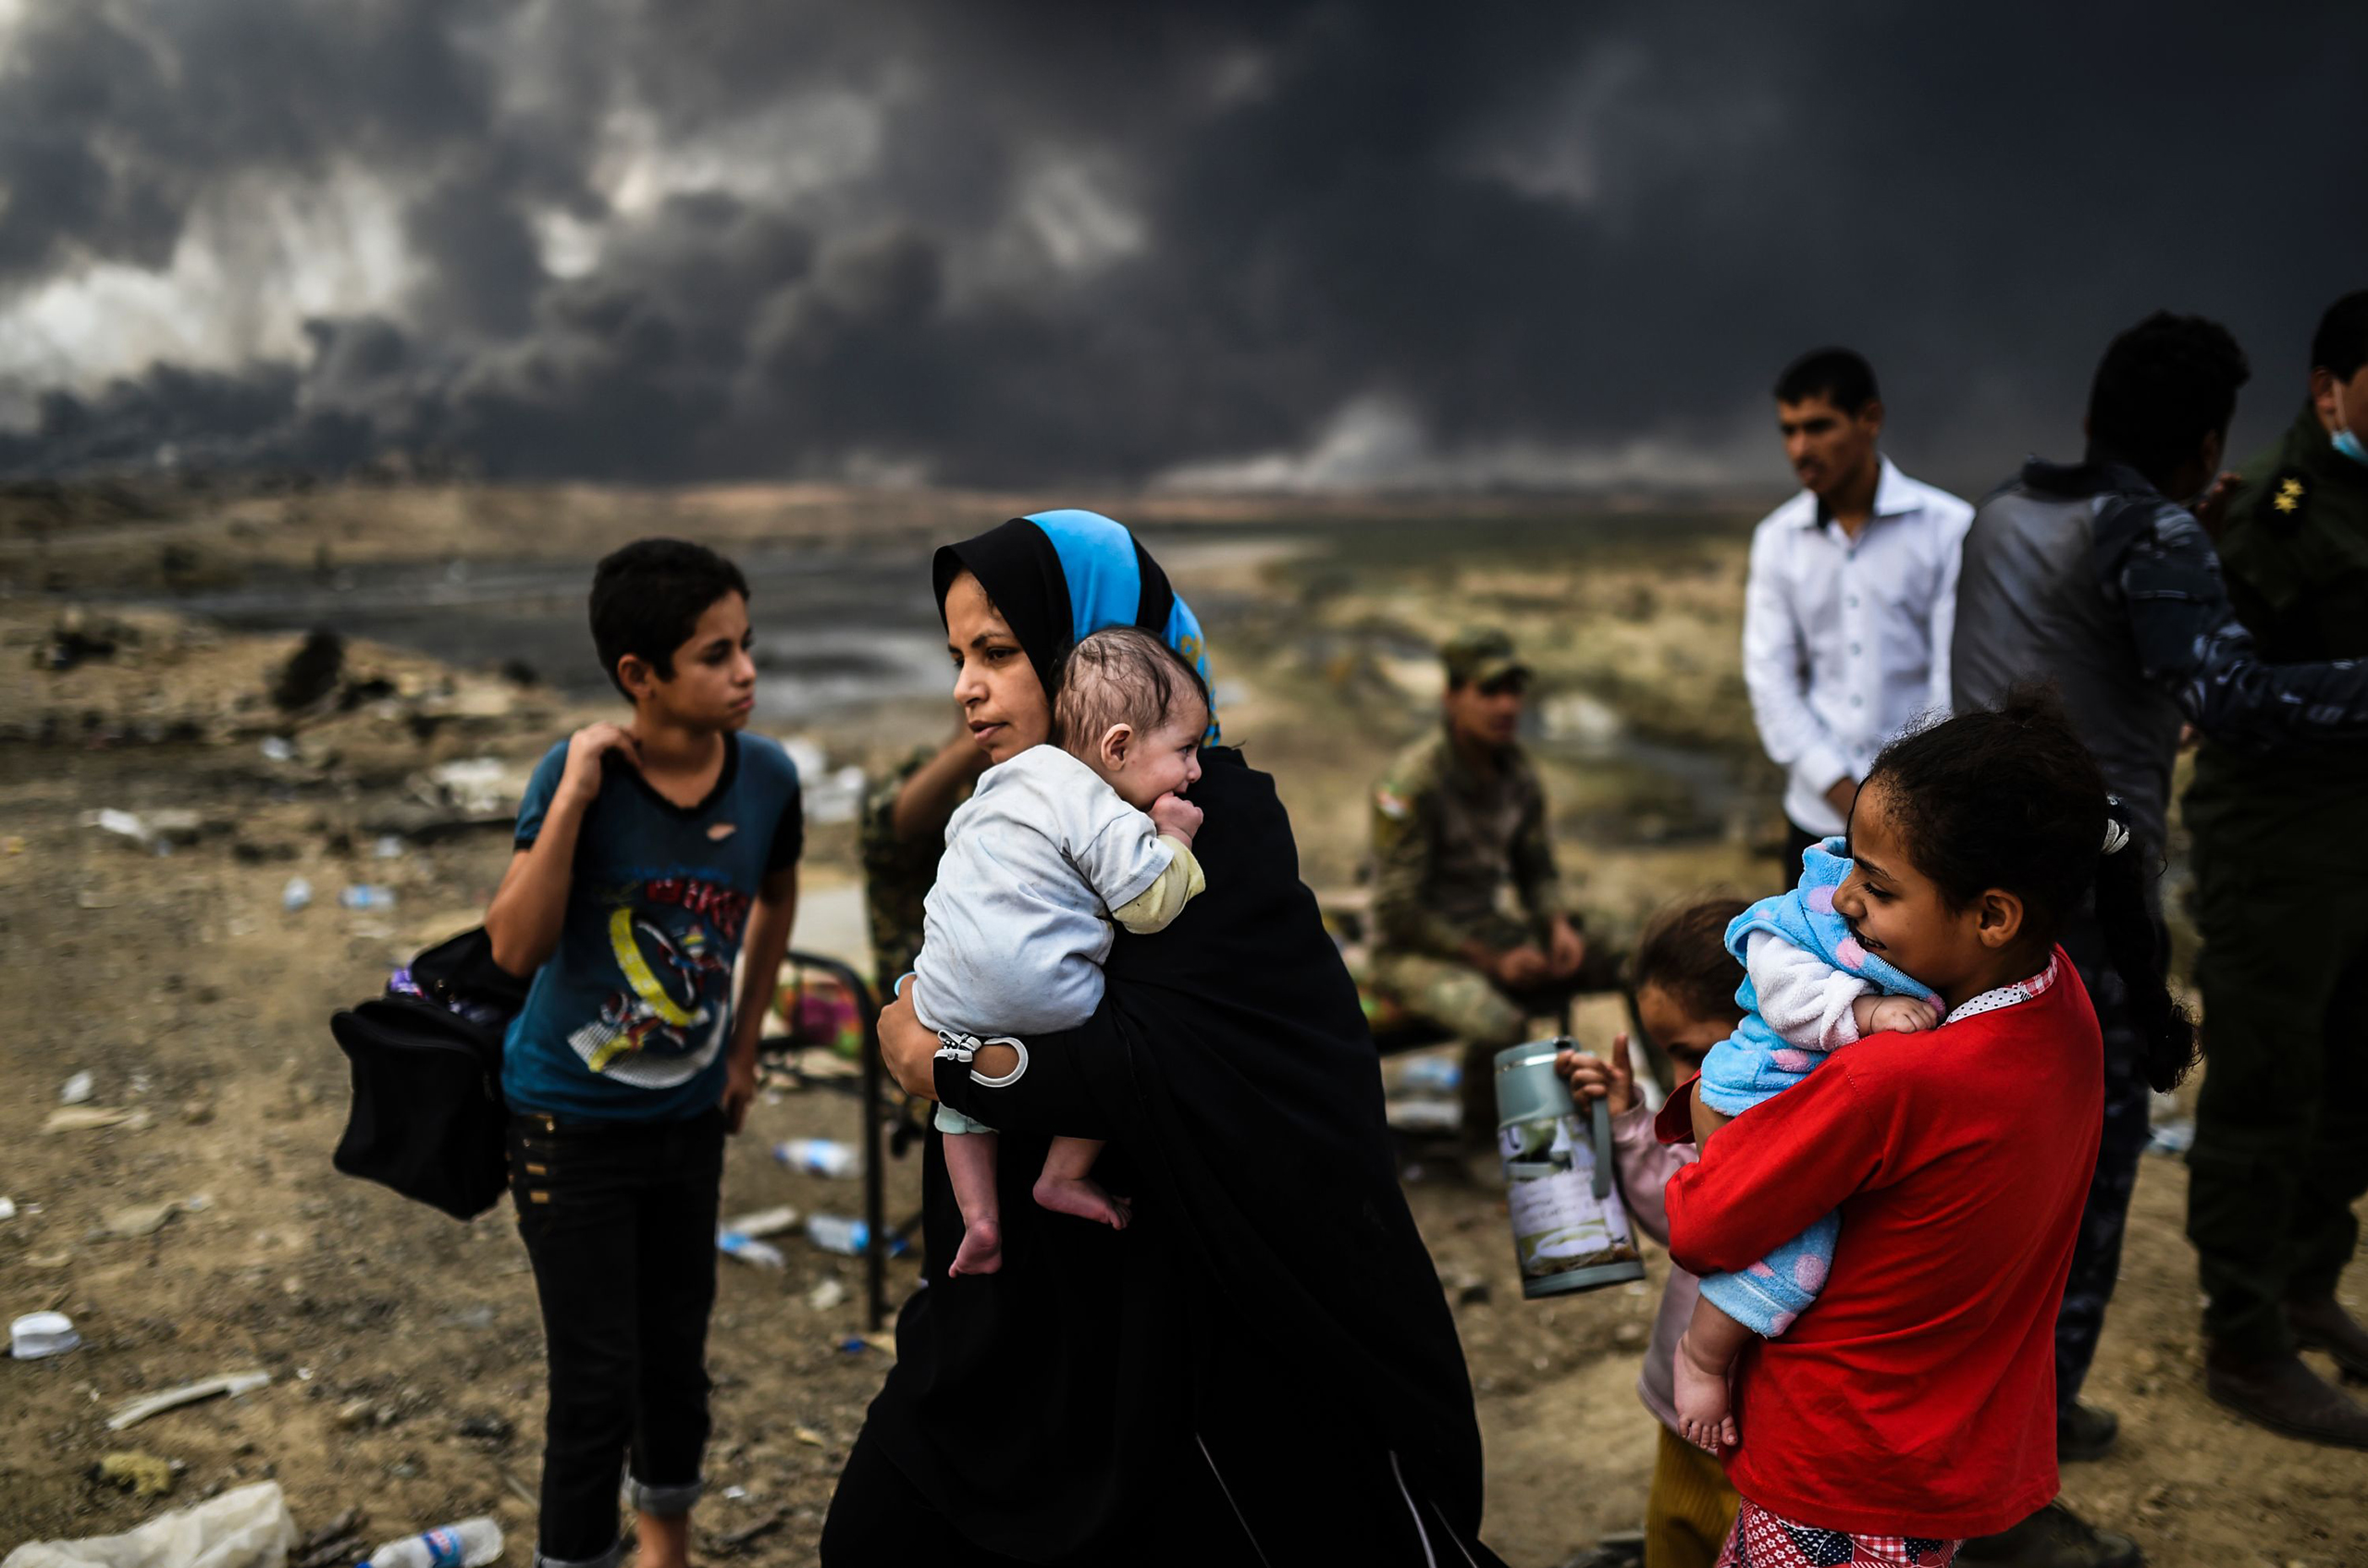 Iraqis displaced by the ongoing operation to retake the city of Mosul, held by ISIS since 2014, gather near Qayyarah on Oct. 24, 2016.